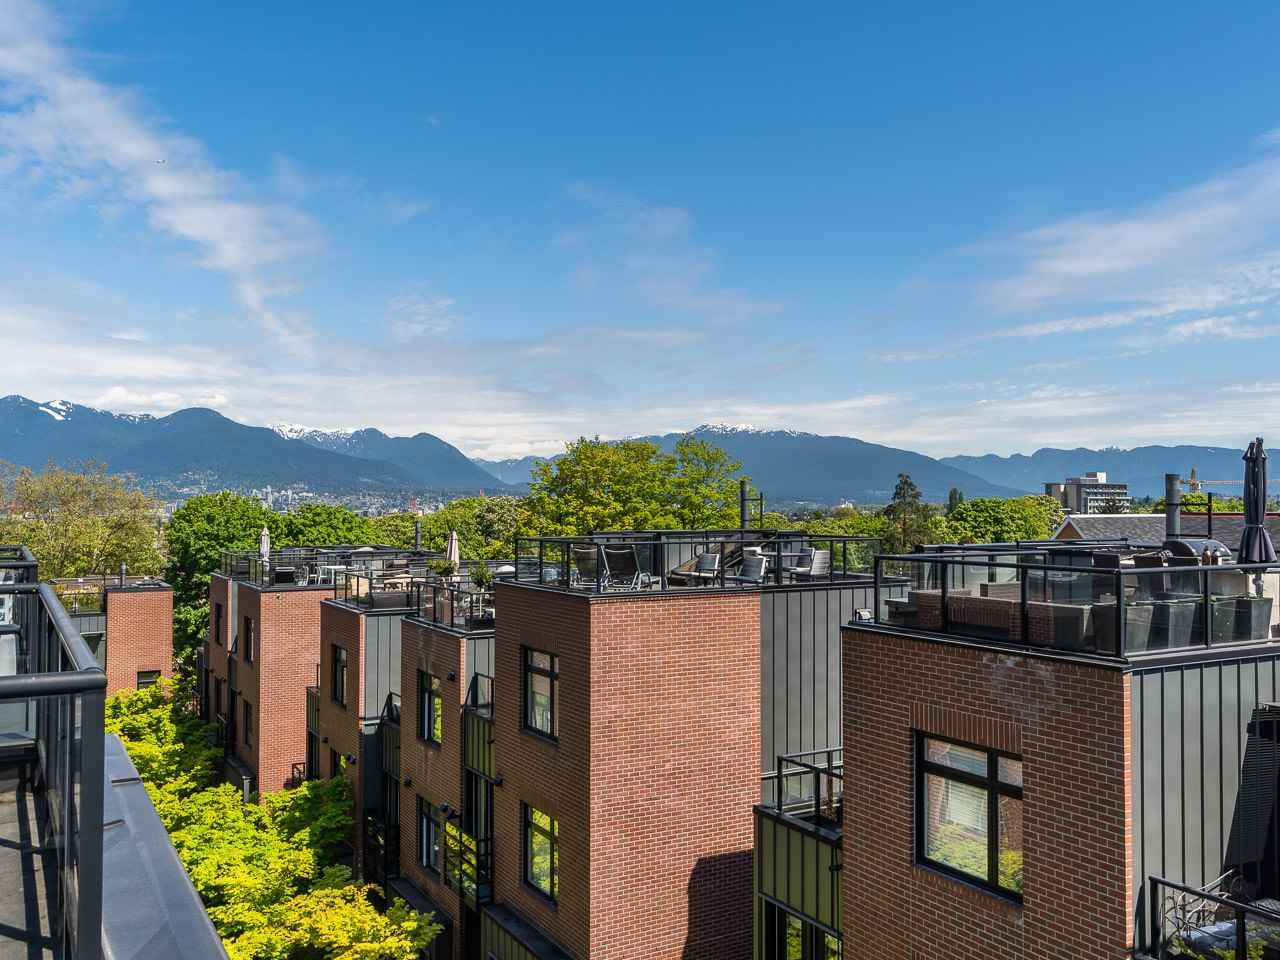 Main Photo: 2781 GUELPH STREET in : Mount Pleasant VE Townhouse for sale (Vancouver East)  : MLS®# R2265644